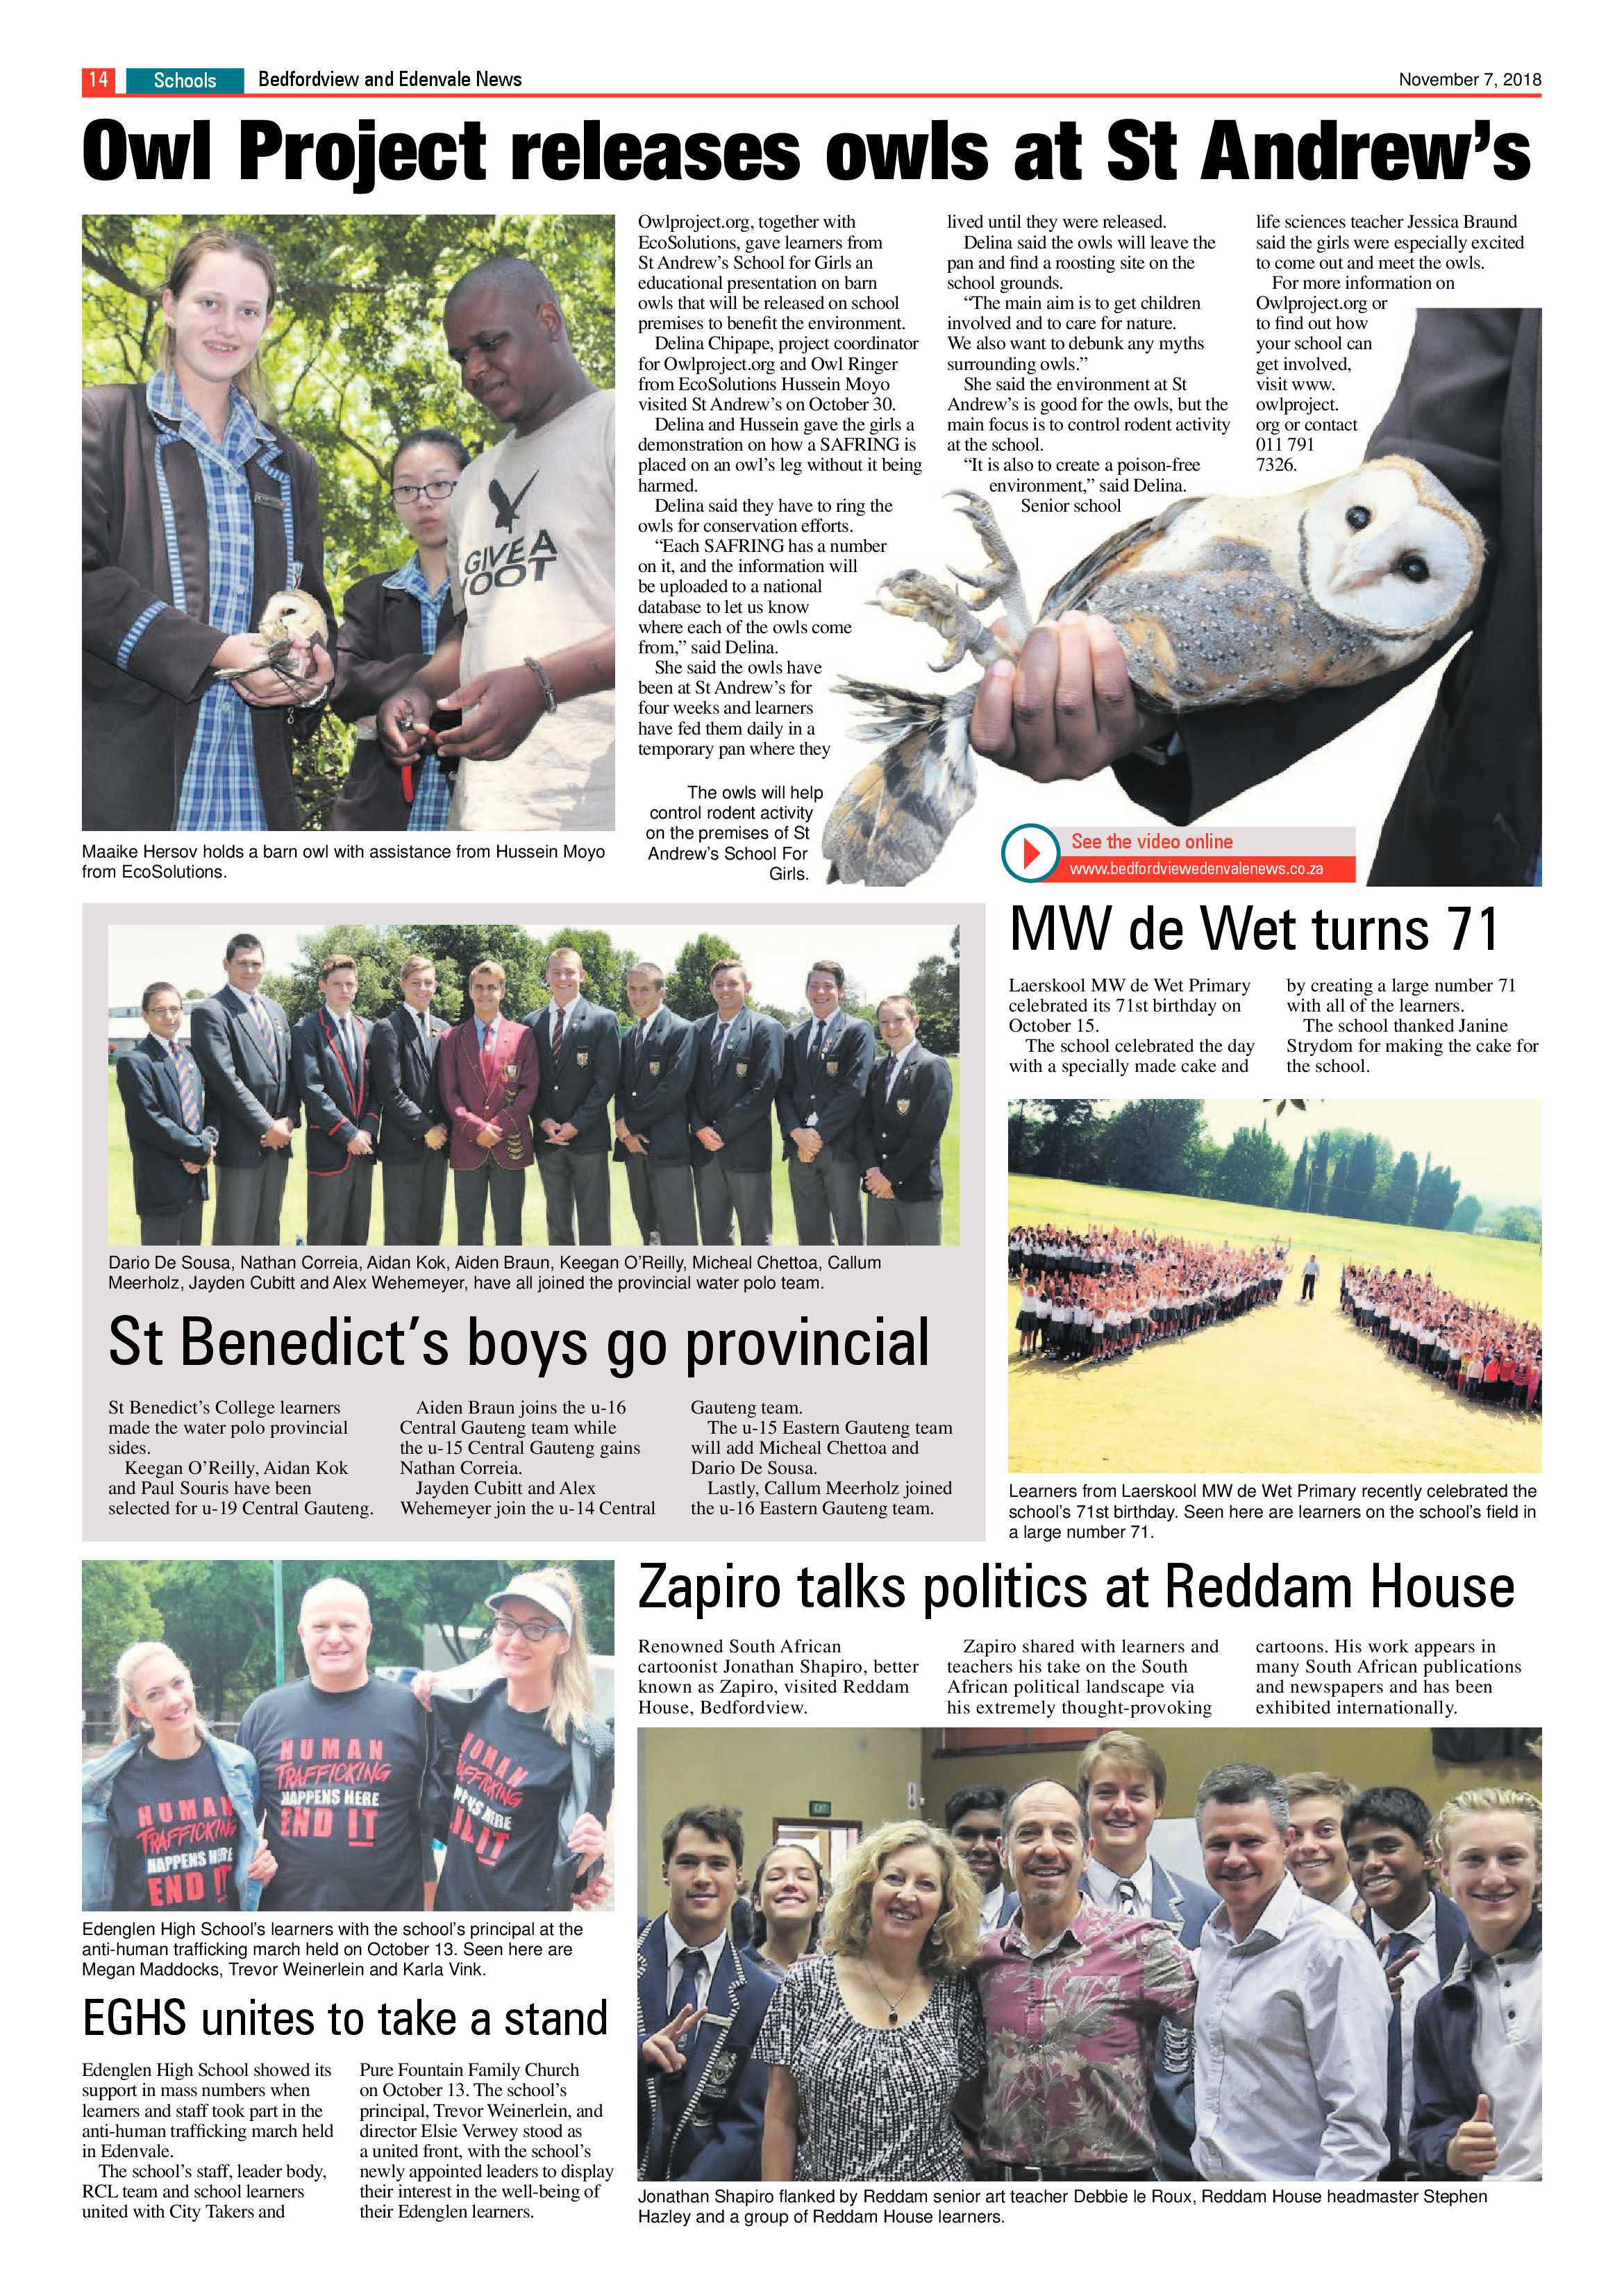 bedfordview-edenvale-news-07-november-2018-epapers-page-14